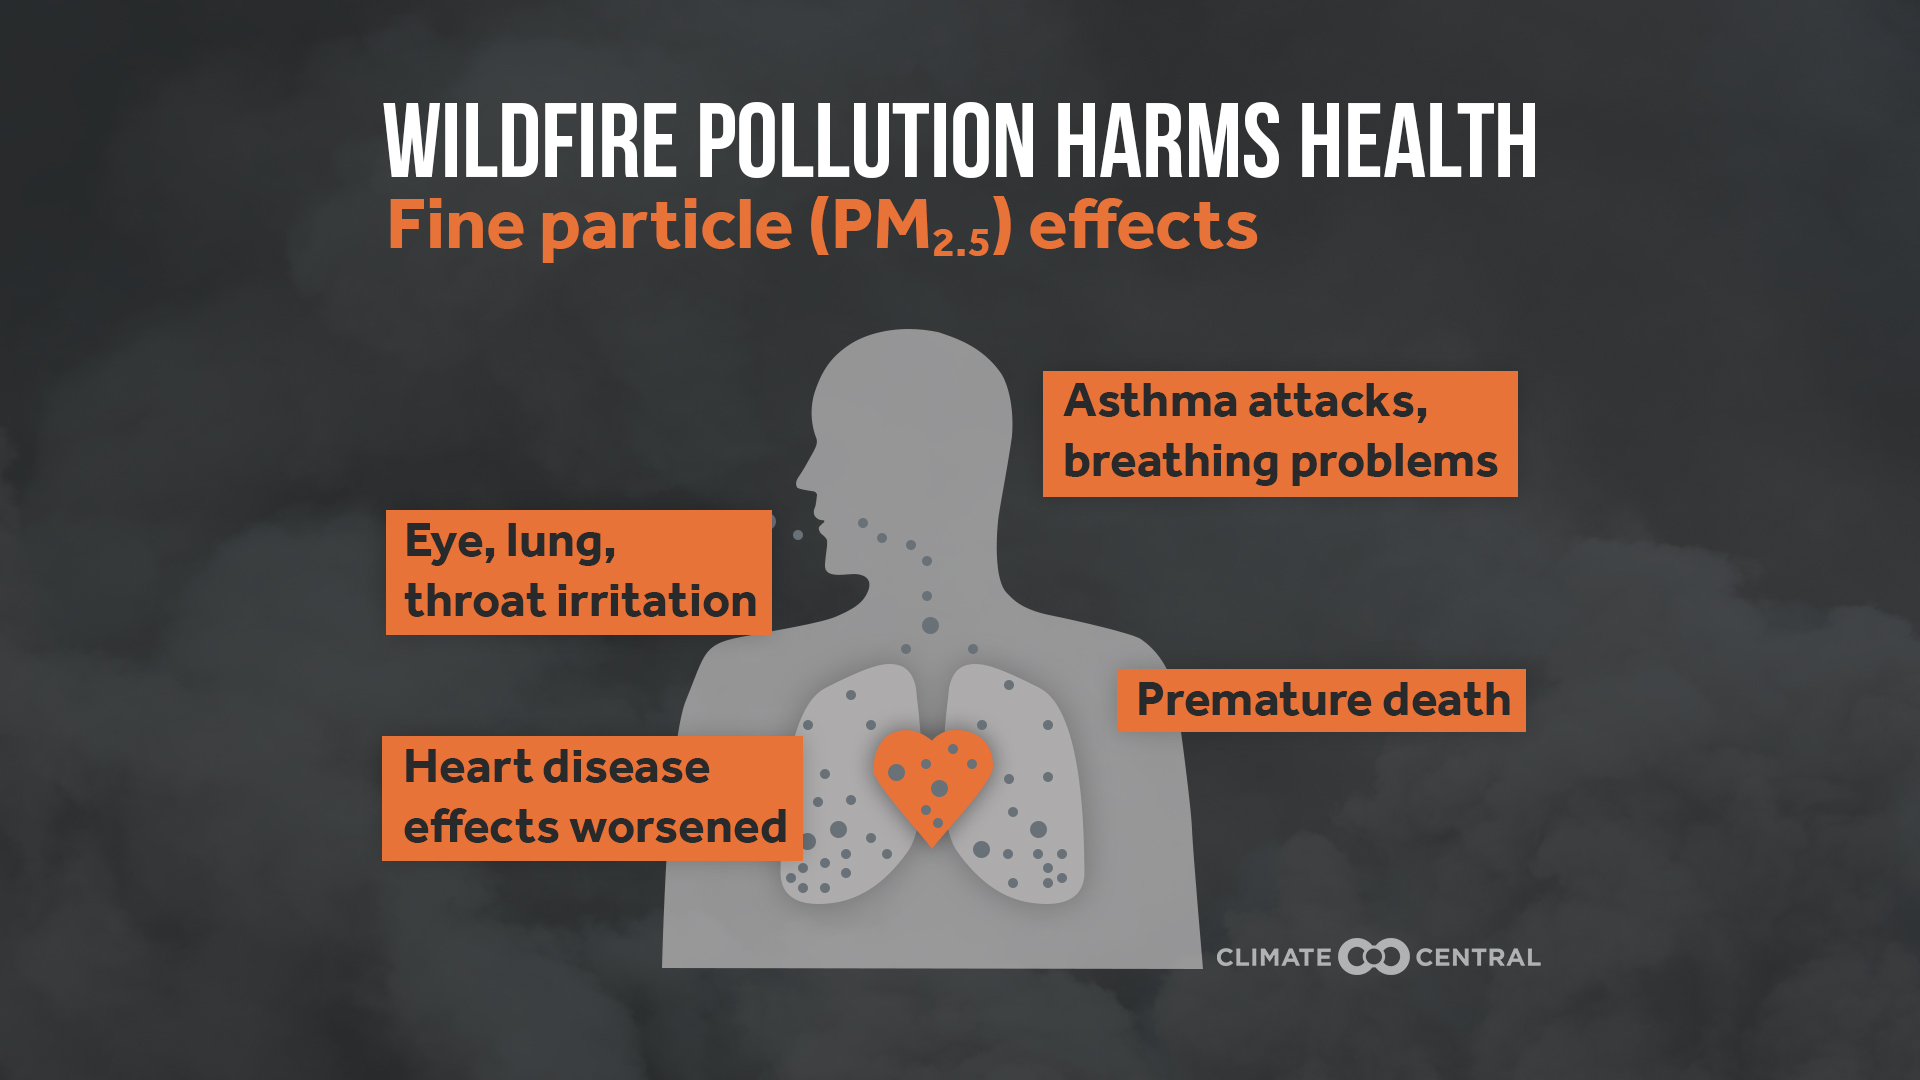 How to Protect Yourself from Wildfire Smoke